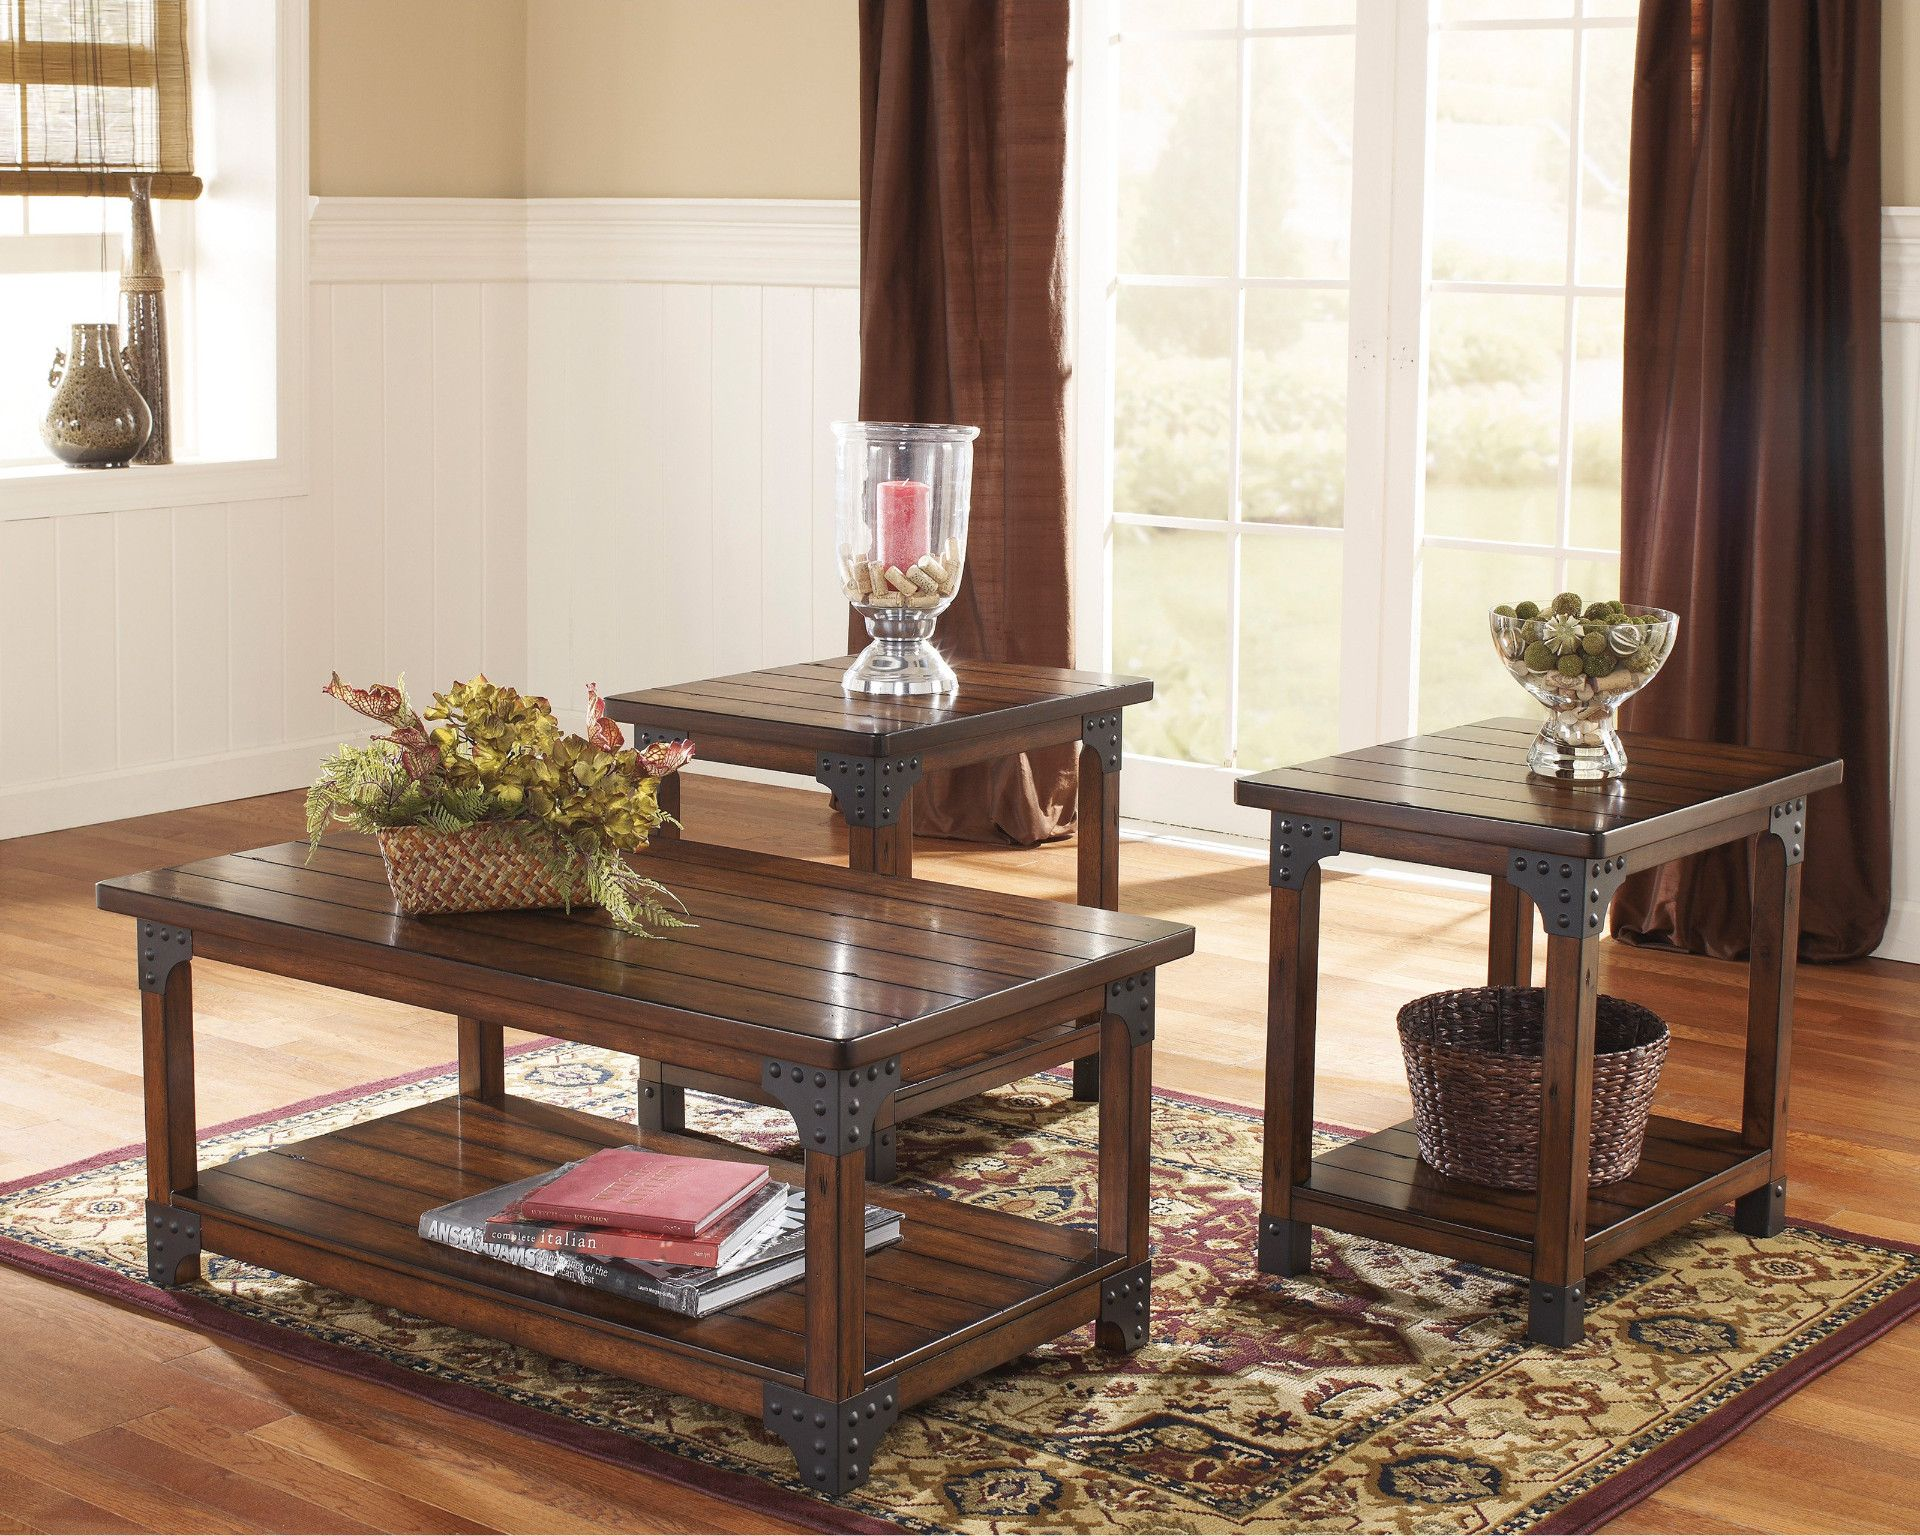 Murphy 3 Piece Table Set Coffee And 2 End Tables By Ashley 349 00 Coffee Table 46 X 26 X 20 H Living Room Table Sets Coffee Table Living Room Table [ 1536 x 1920 Pixel ]